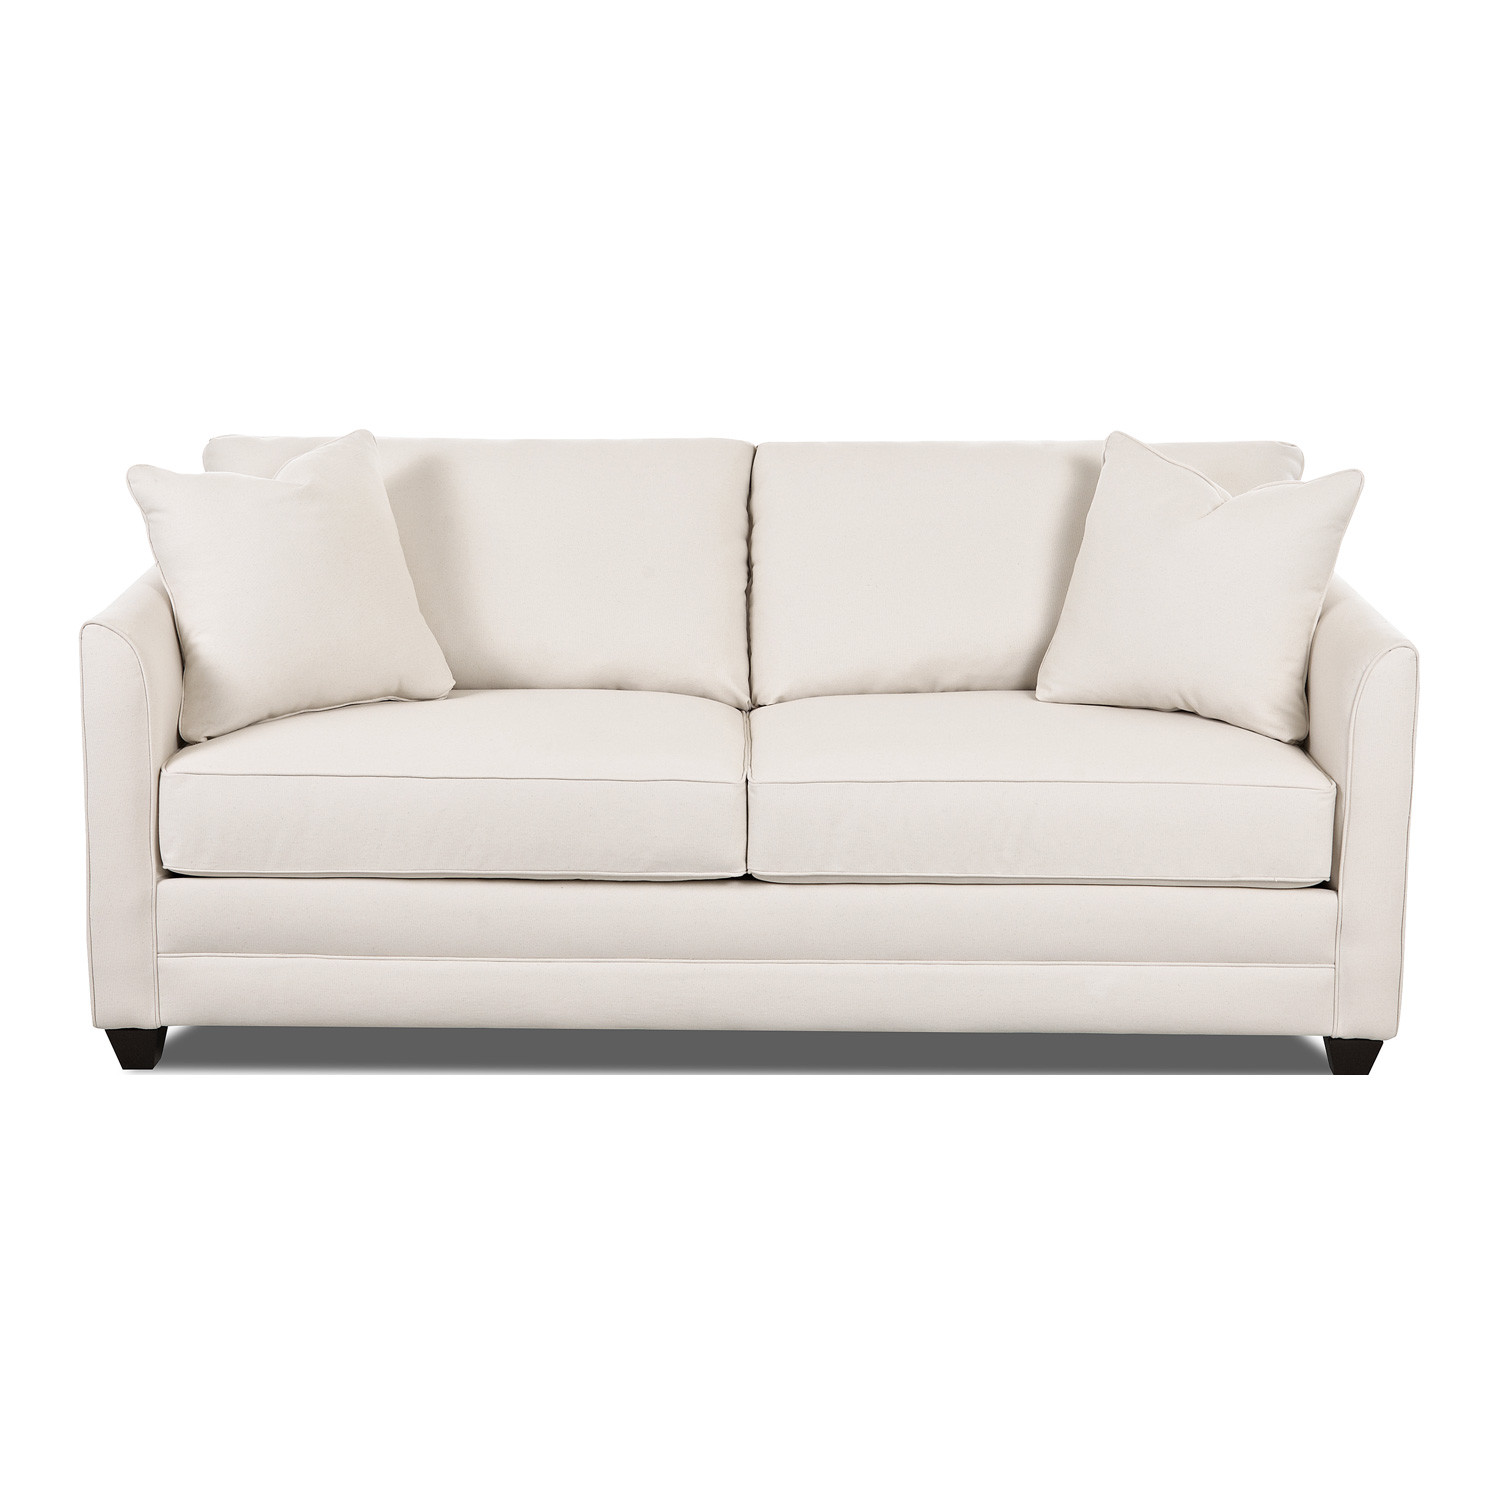 Wayfair-Custom-Upholstery-Sarah-Sofa